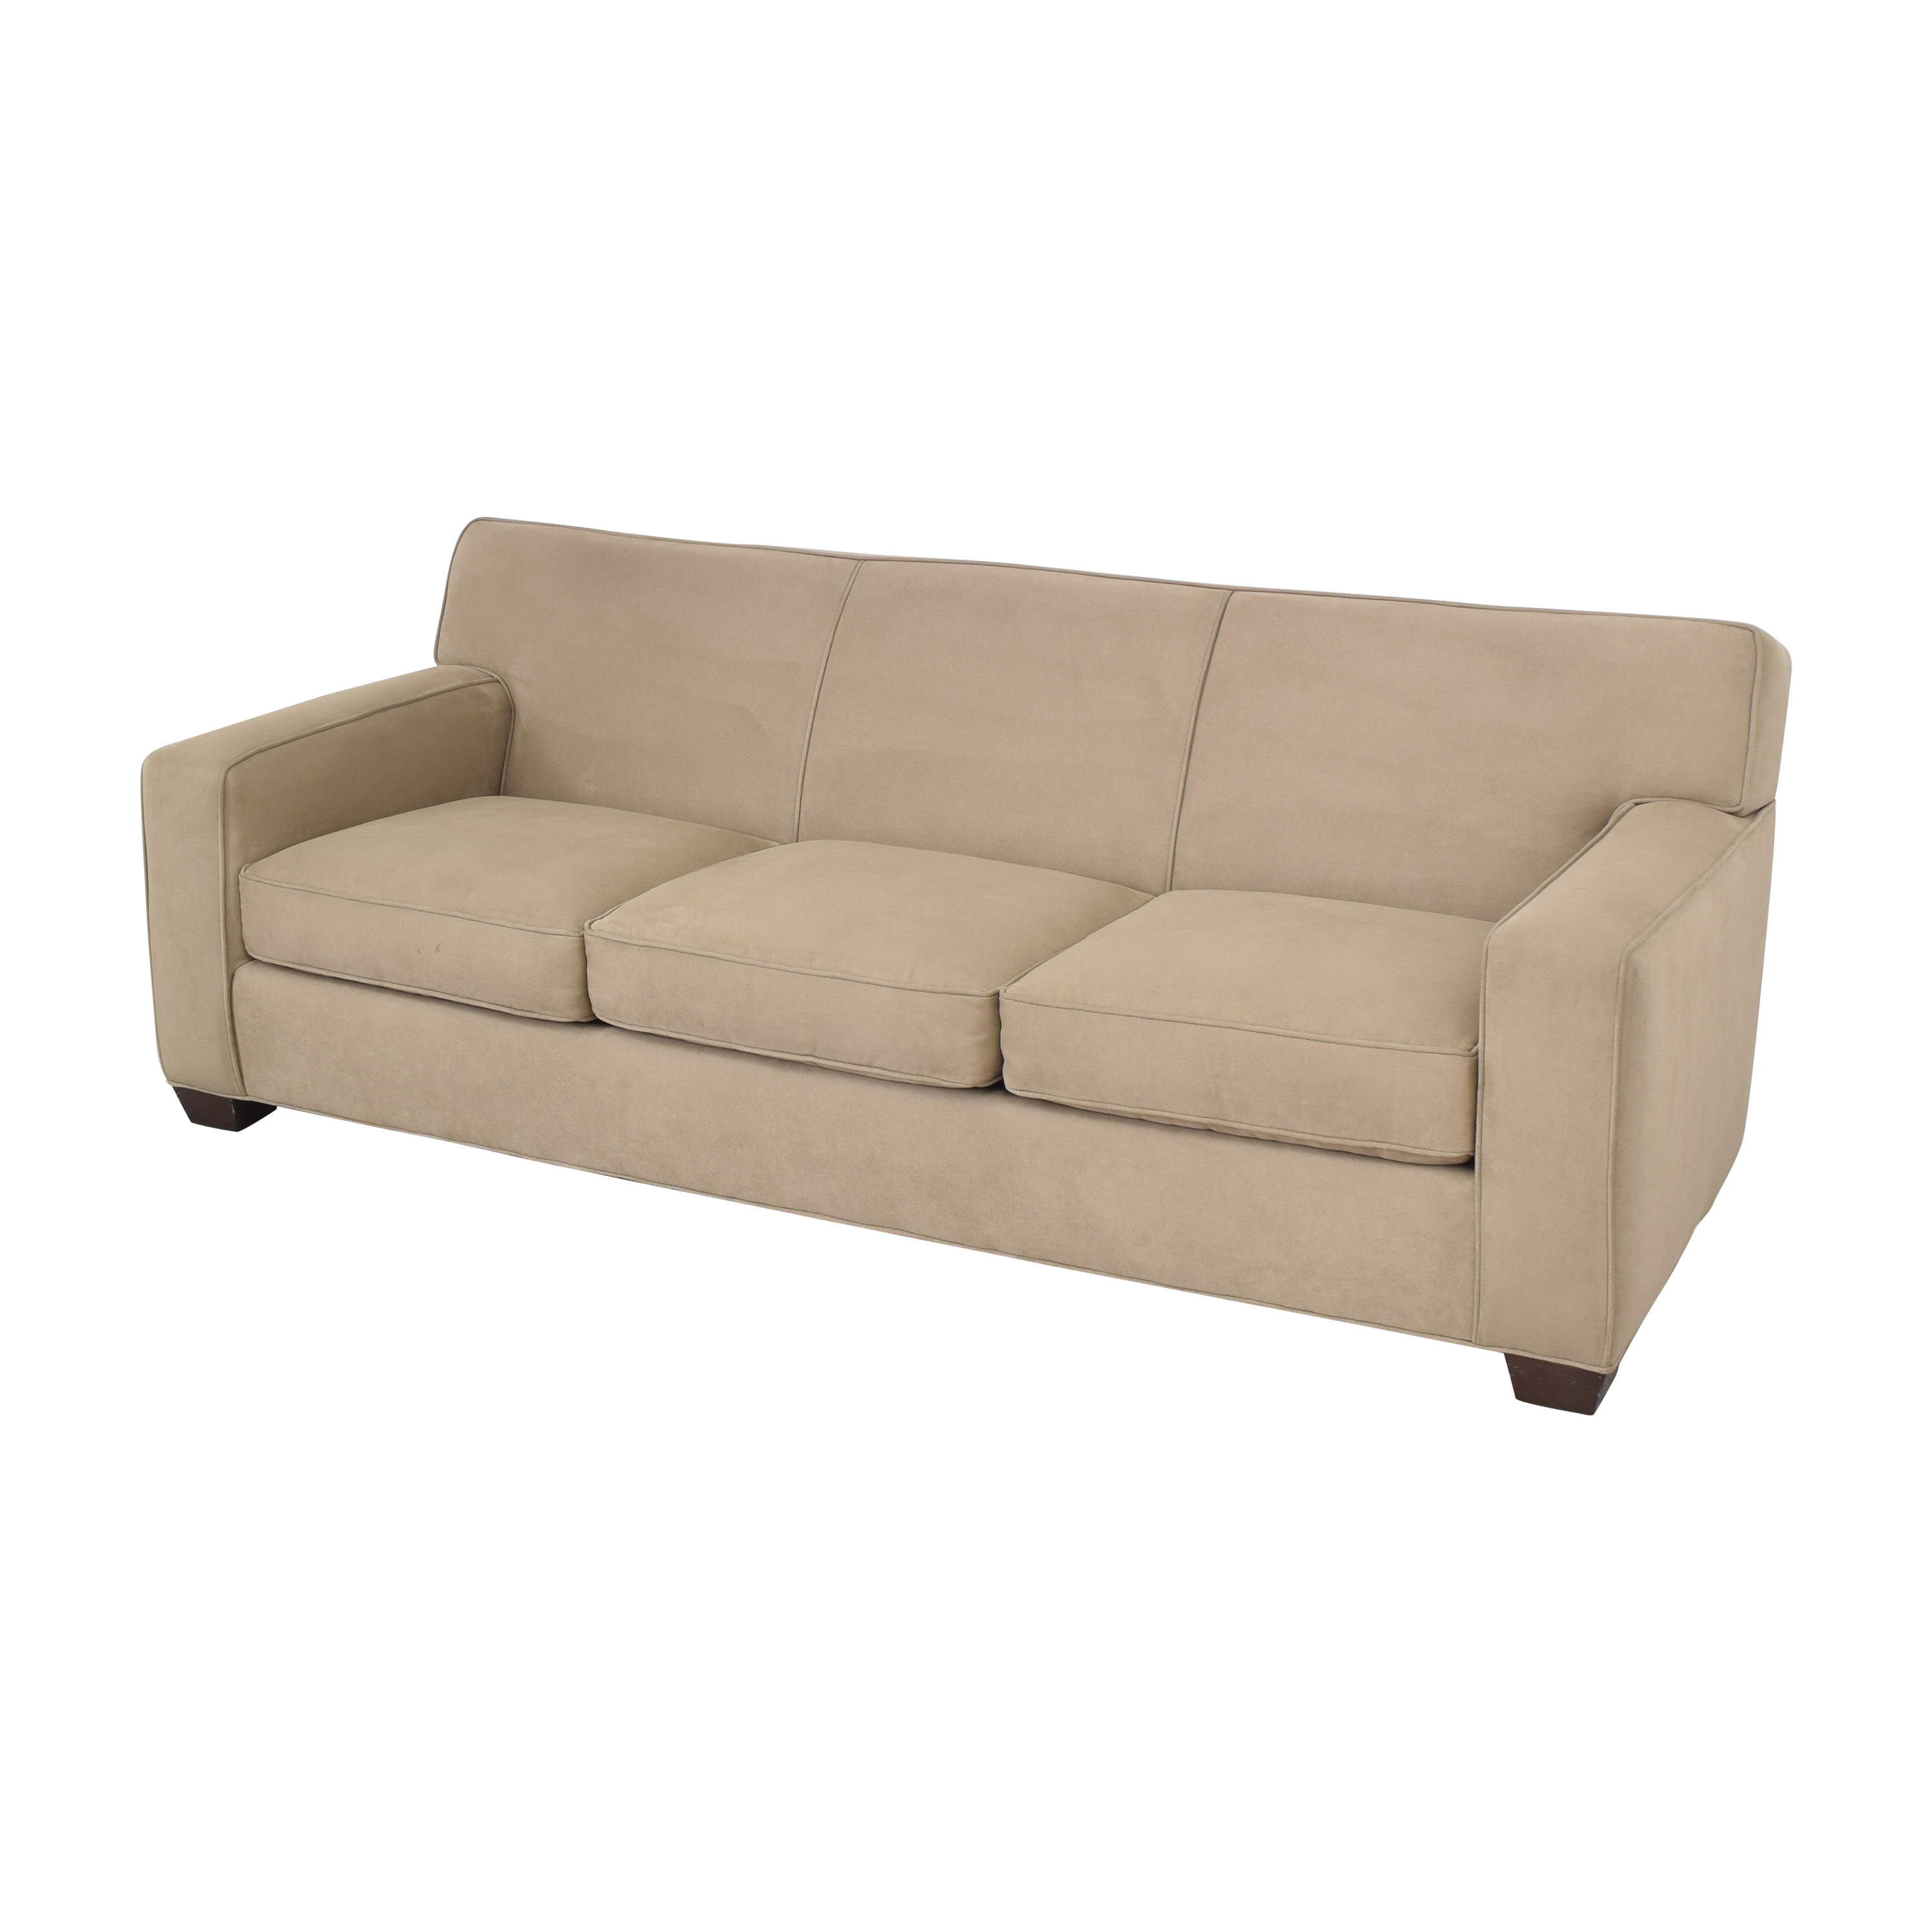 Crate & Barrel Crate & Barrel Axis II Three Seat Sofa Sofas